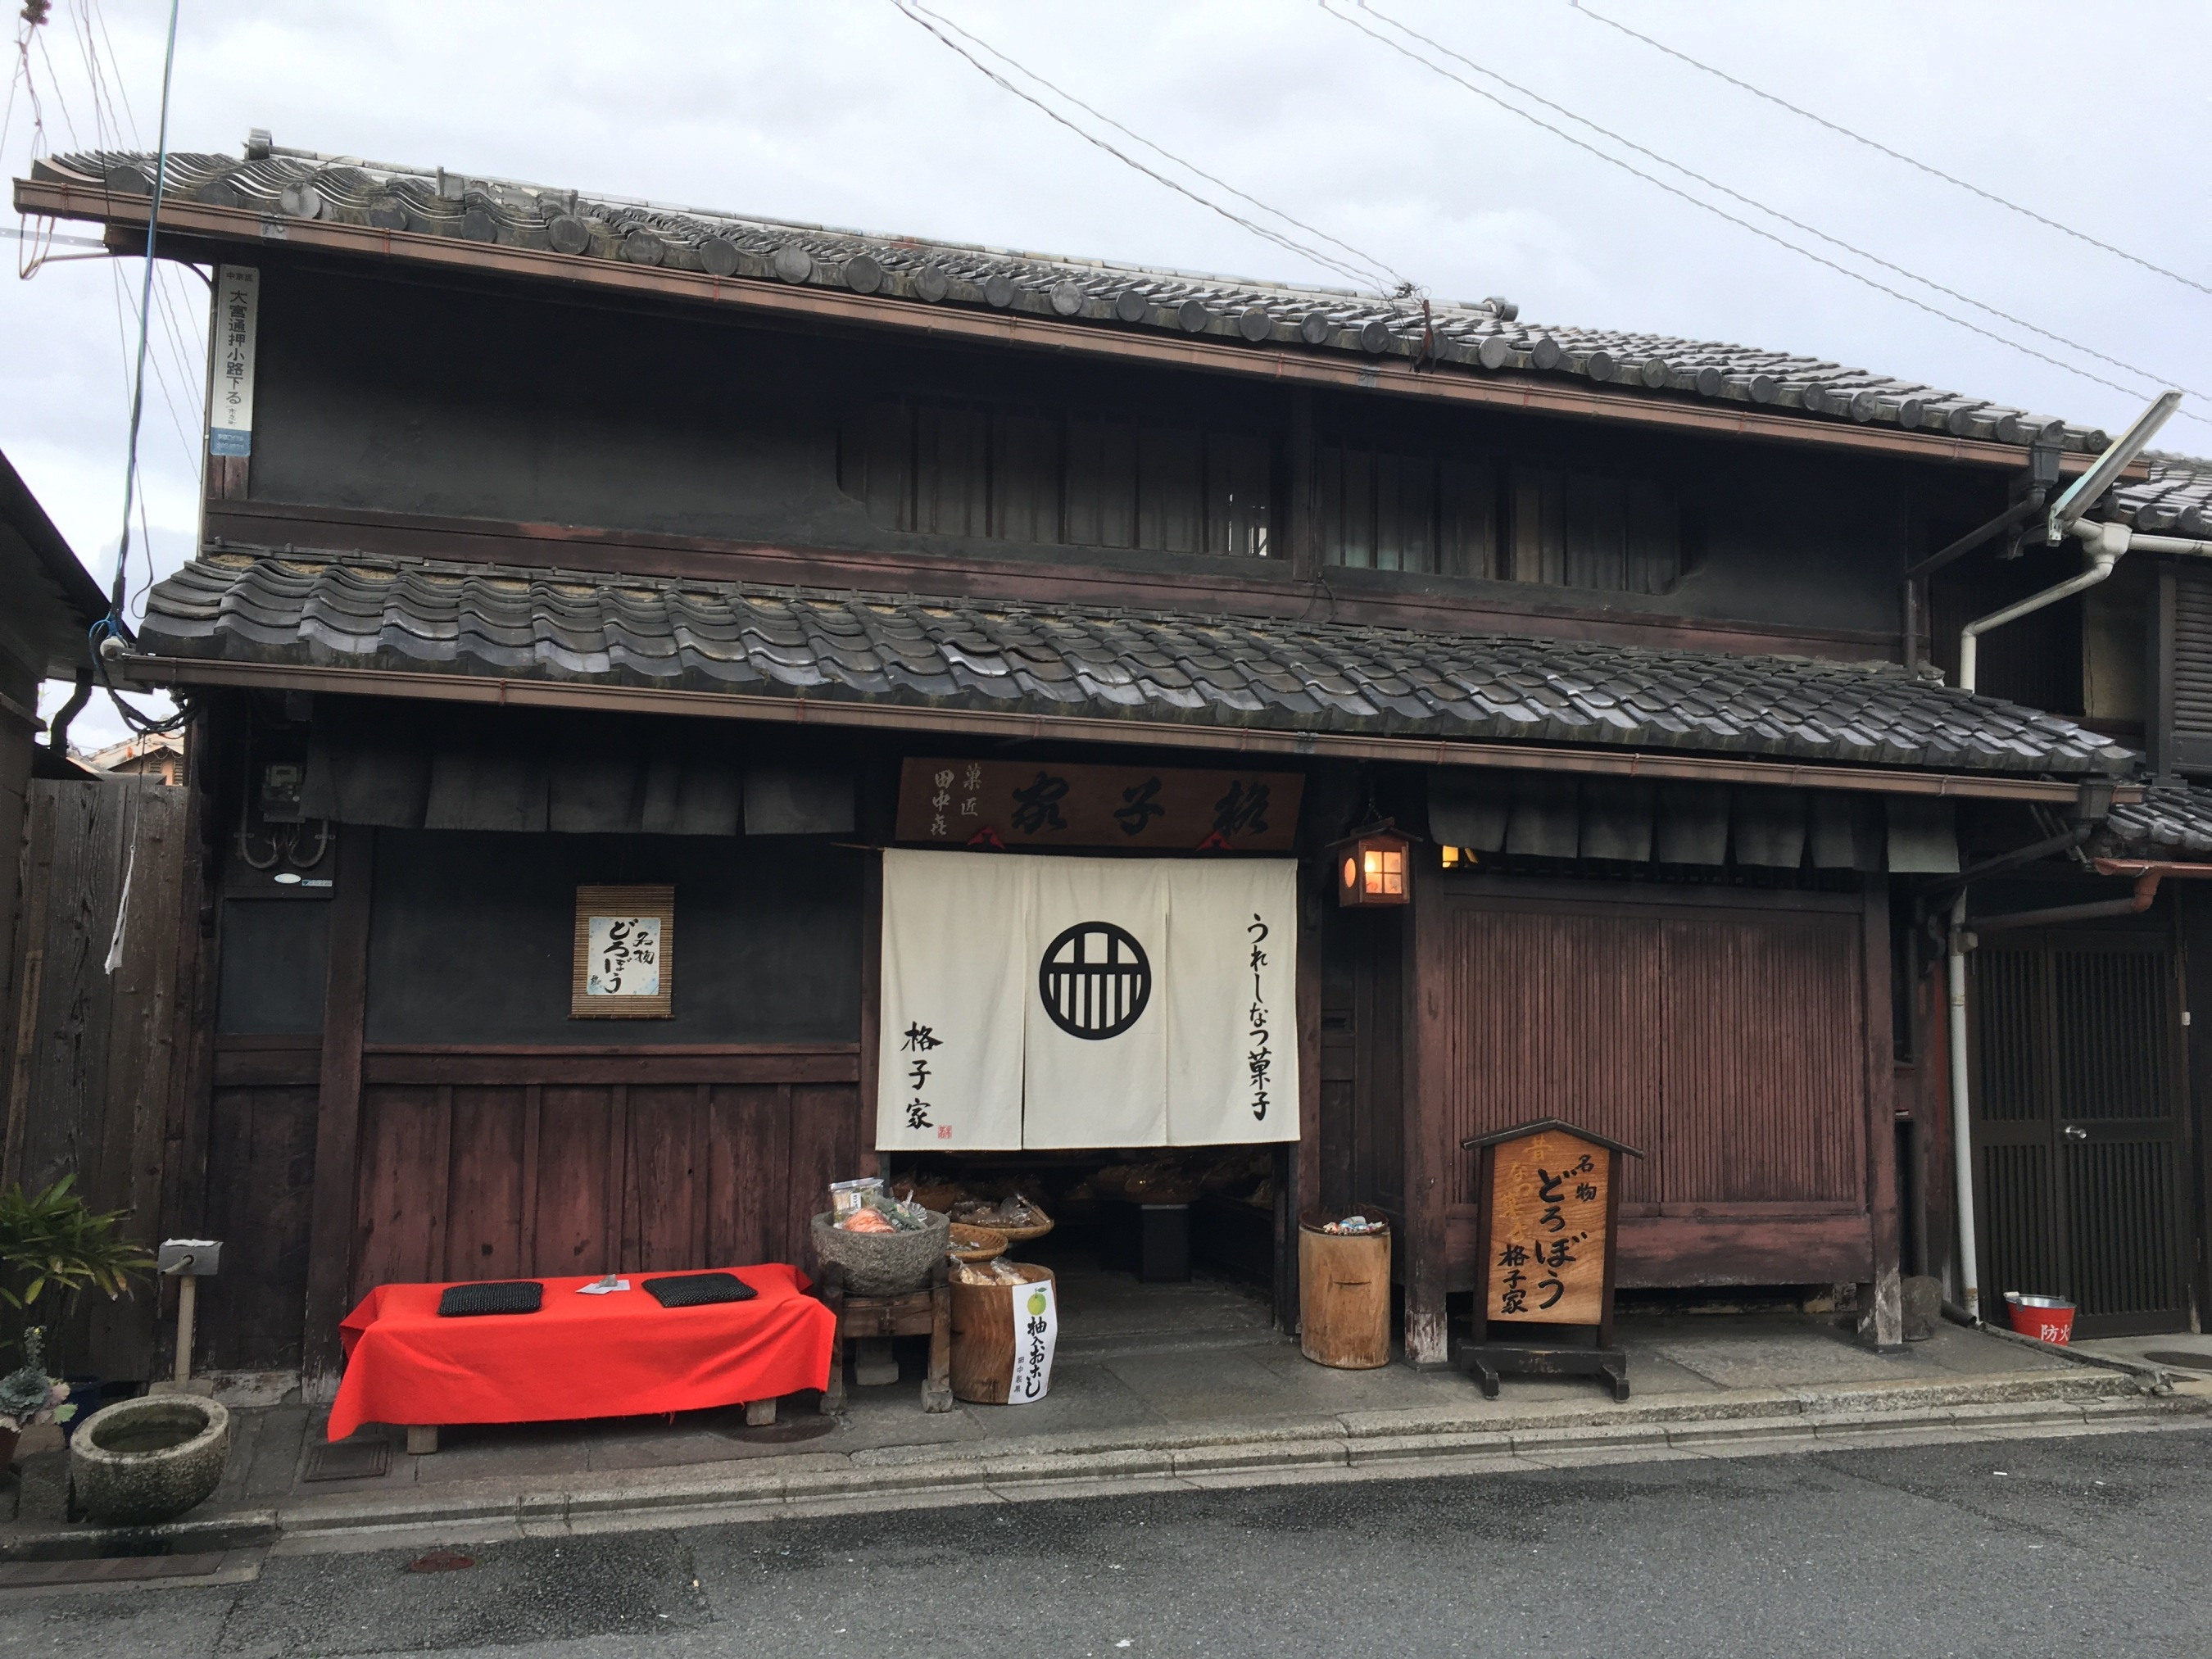 This sweet shop in Nijo trades from a traditional Japanese house, made largely of wood.